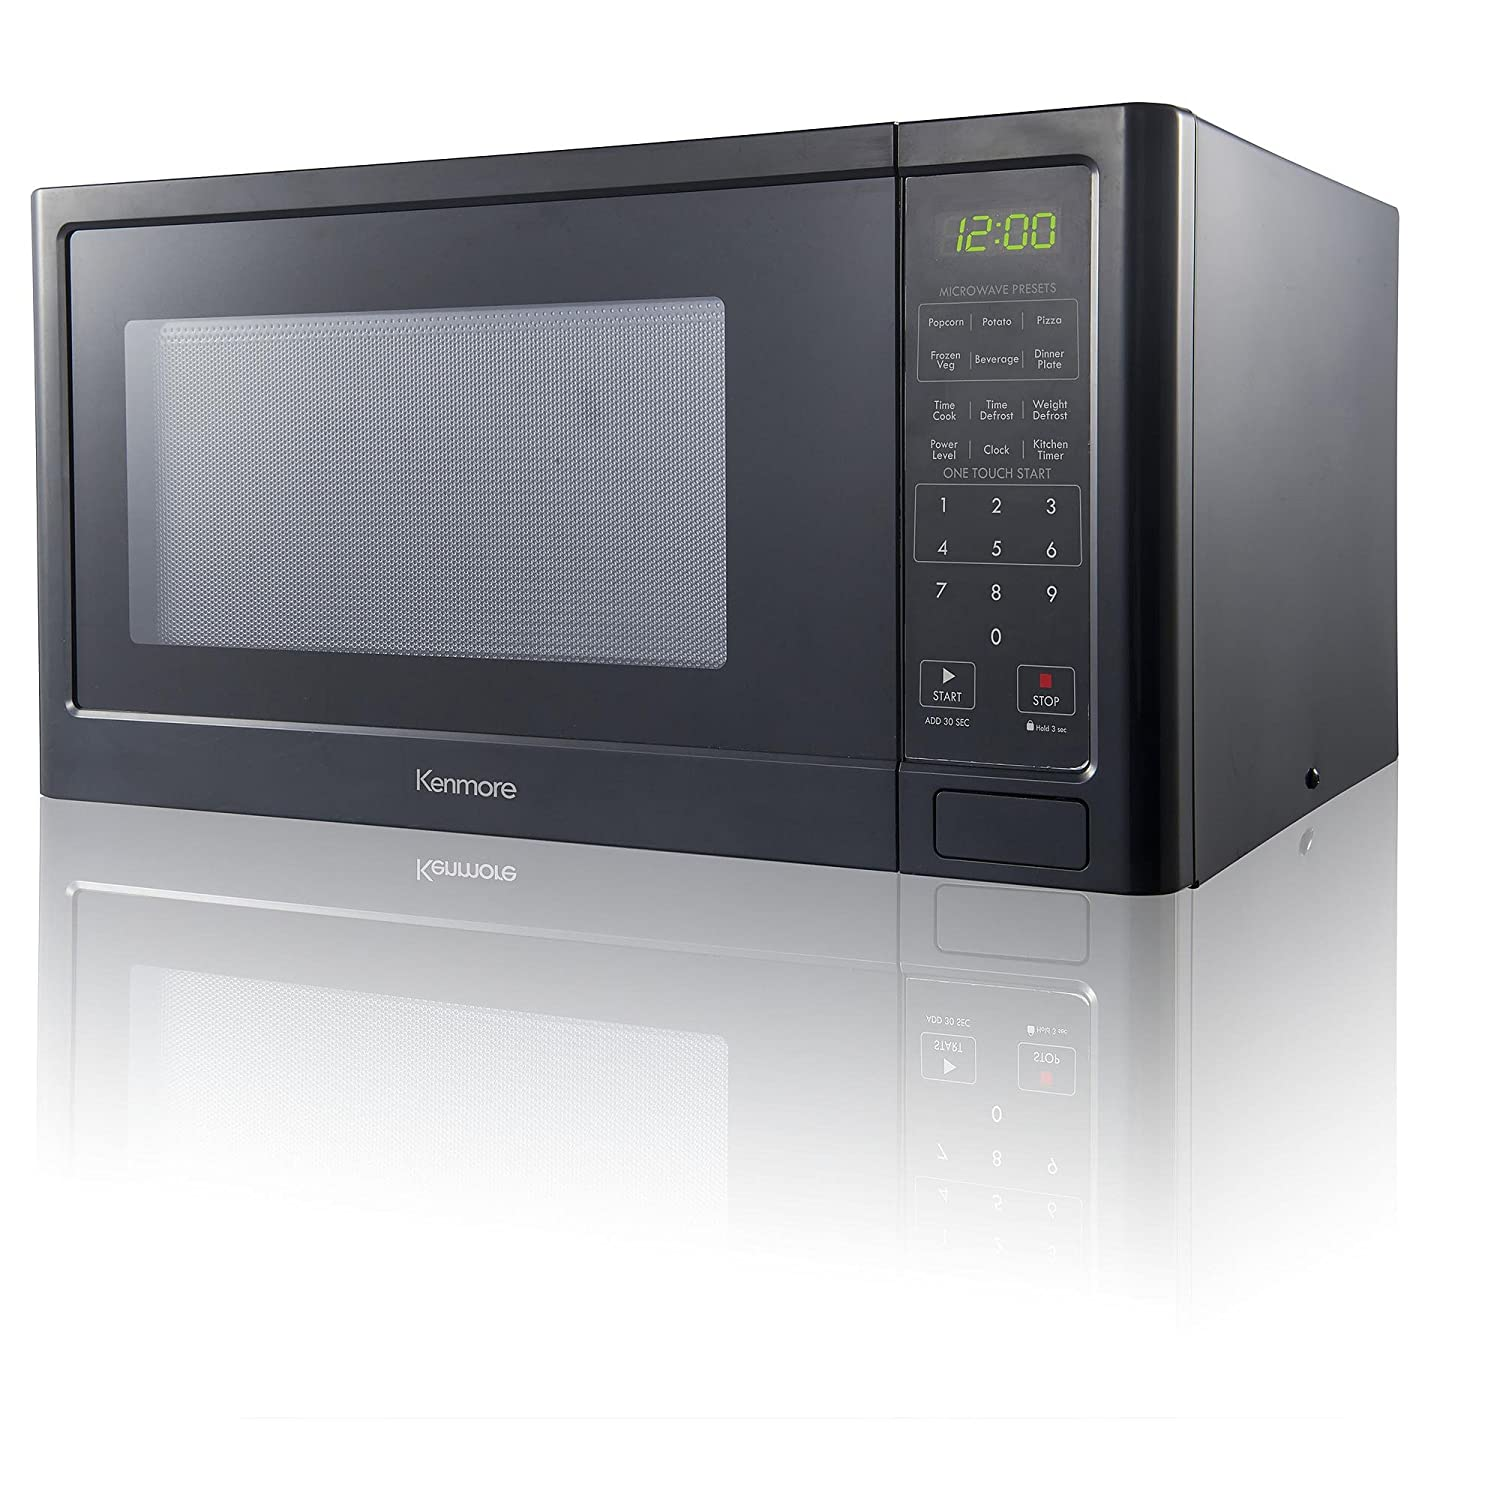 Kitchen Microwave Amazoncom Kenmore 09 Cu Ft Countertop Microwave Oven Black